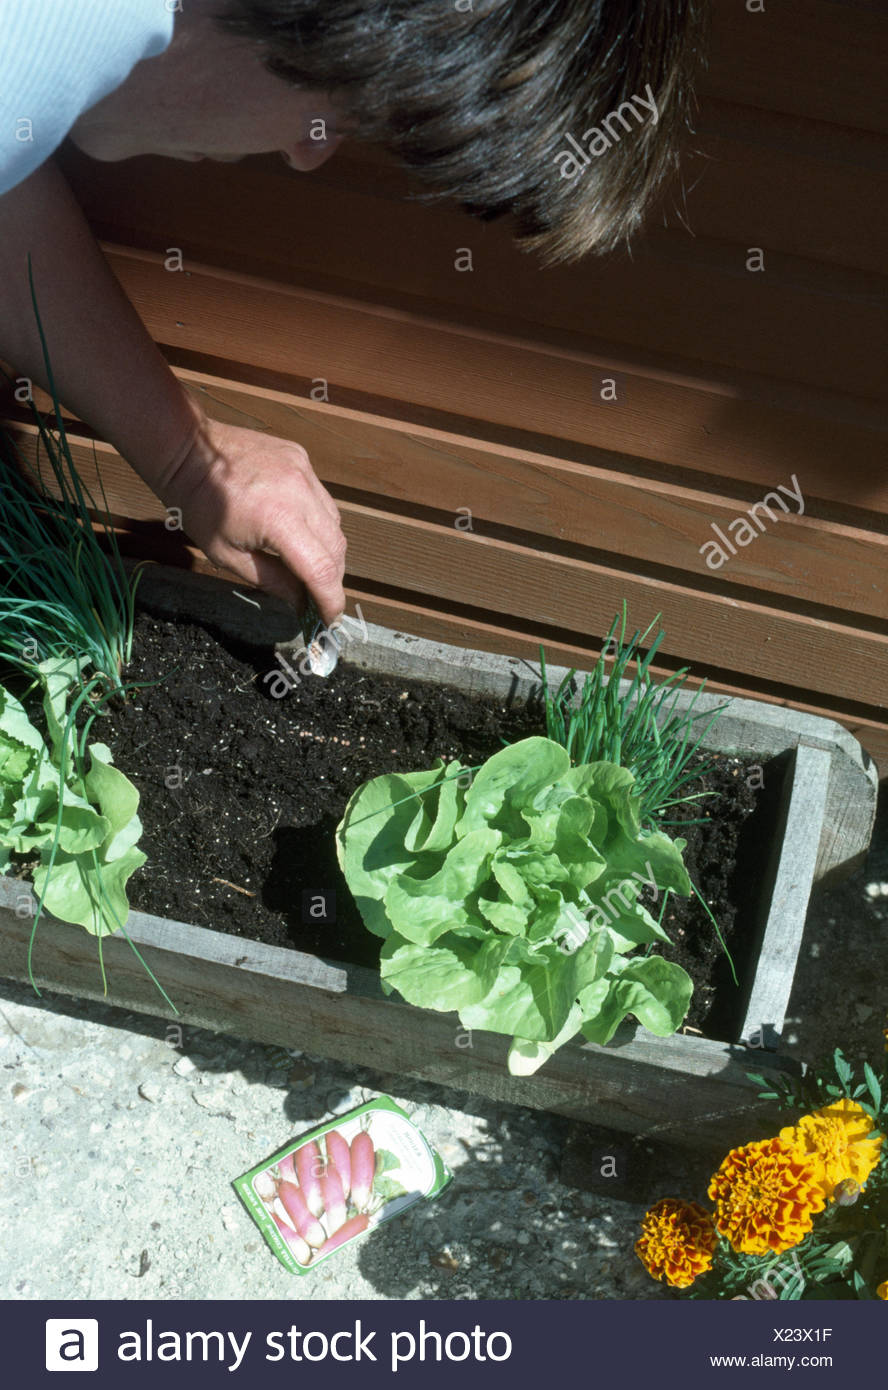 Close-up of a woman planting up a window box with lettuce and chives     FOR EDITORIAL USE ONLY - Stock Image